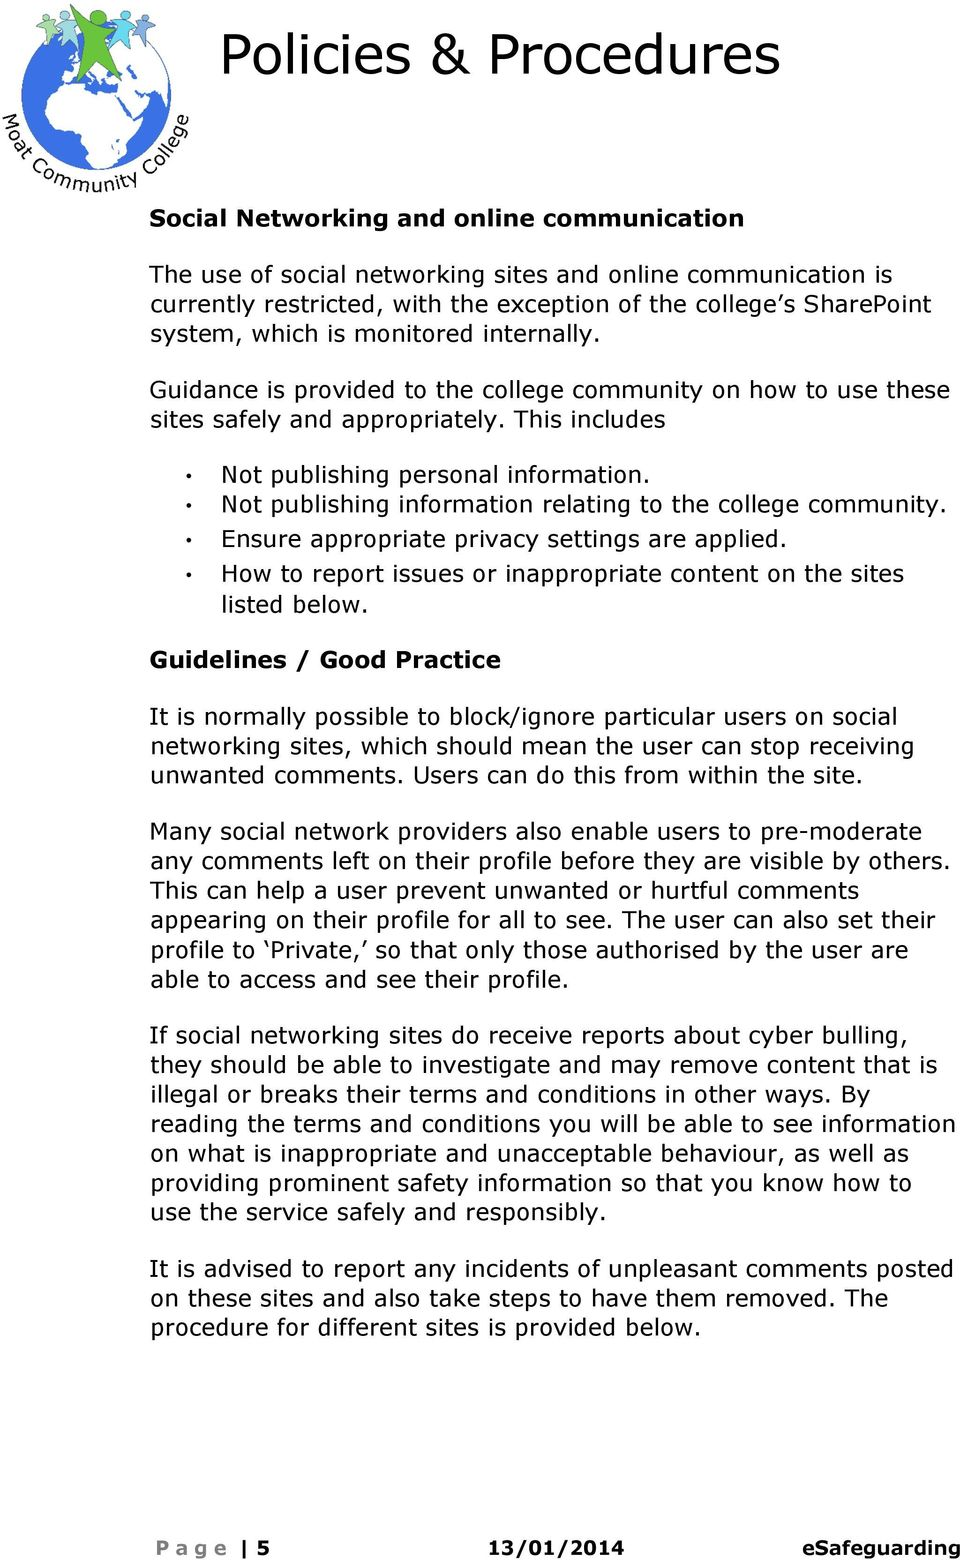 Not publishing information relating to the college community. Ensure appropriate privacy settings are applied. How to report issues or inappropriate content on the sites listed below.